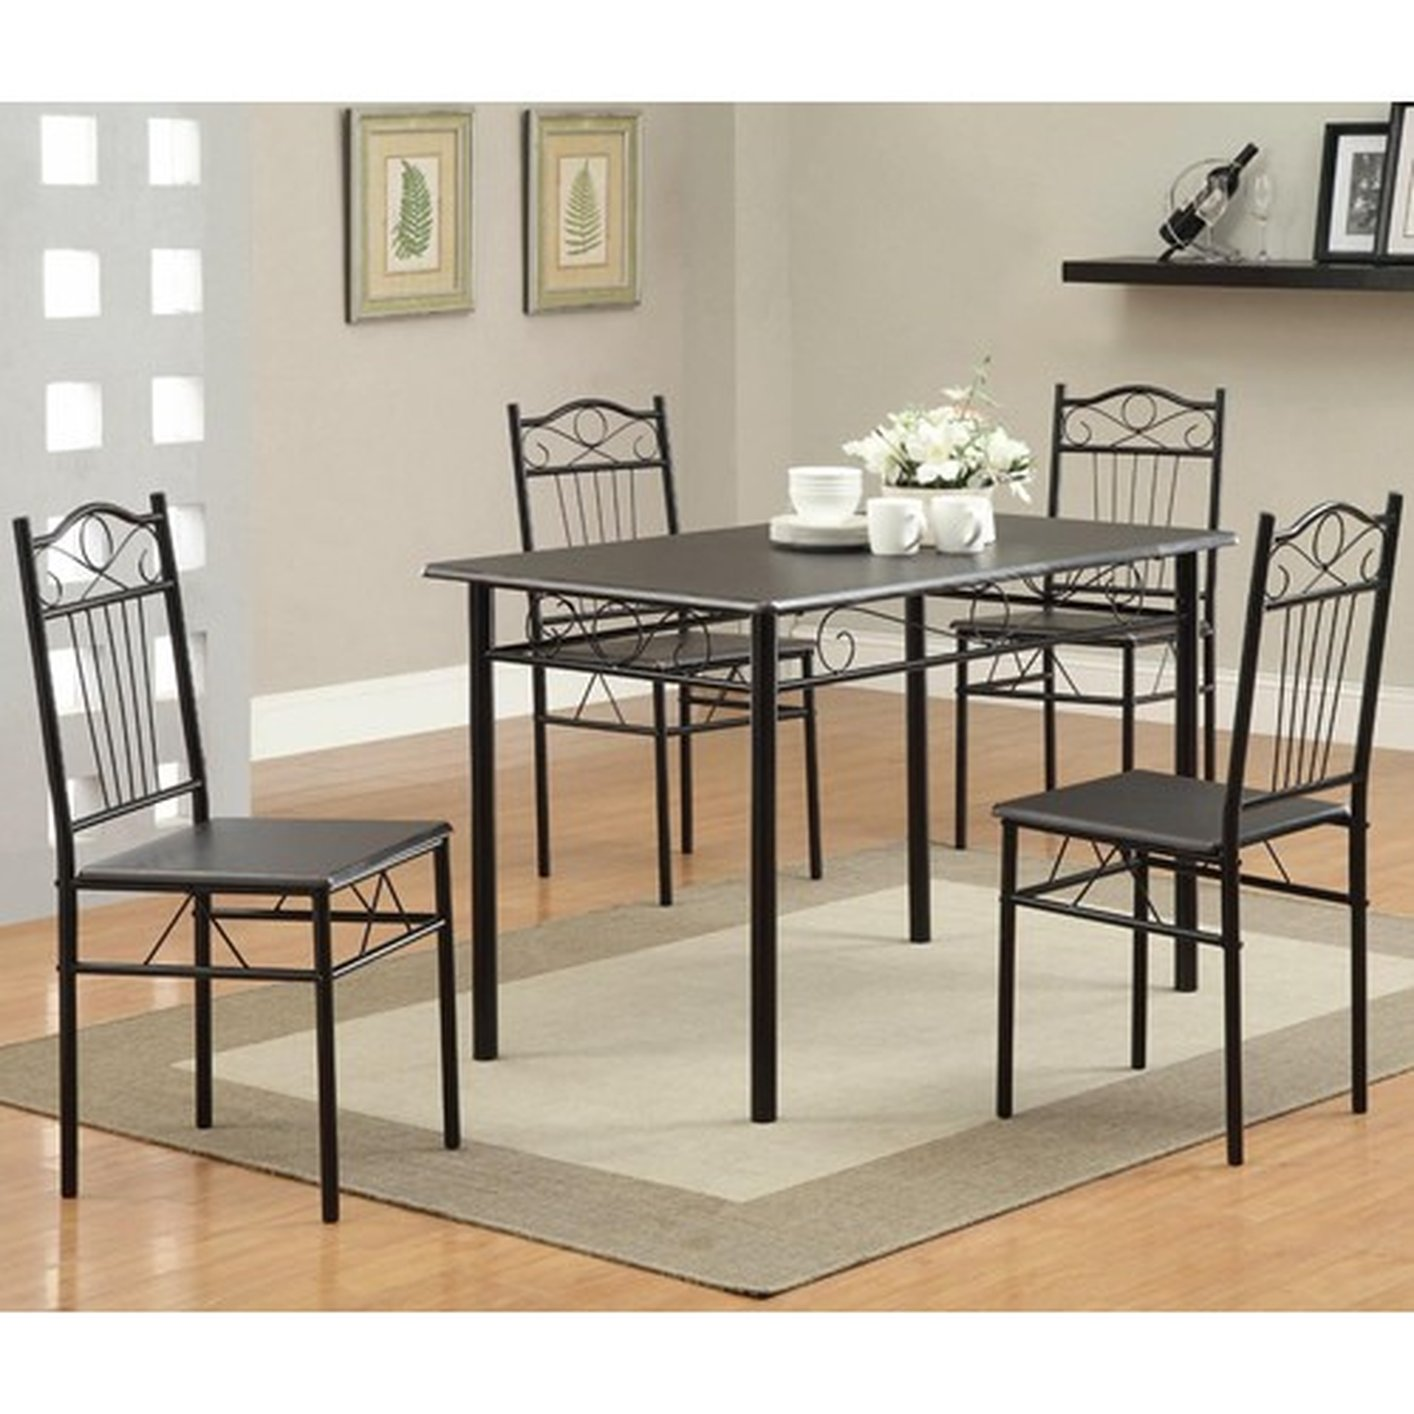 Elegant Black Metal Dining Table And Chair Set